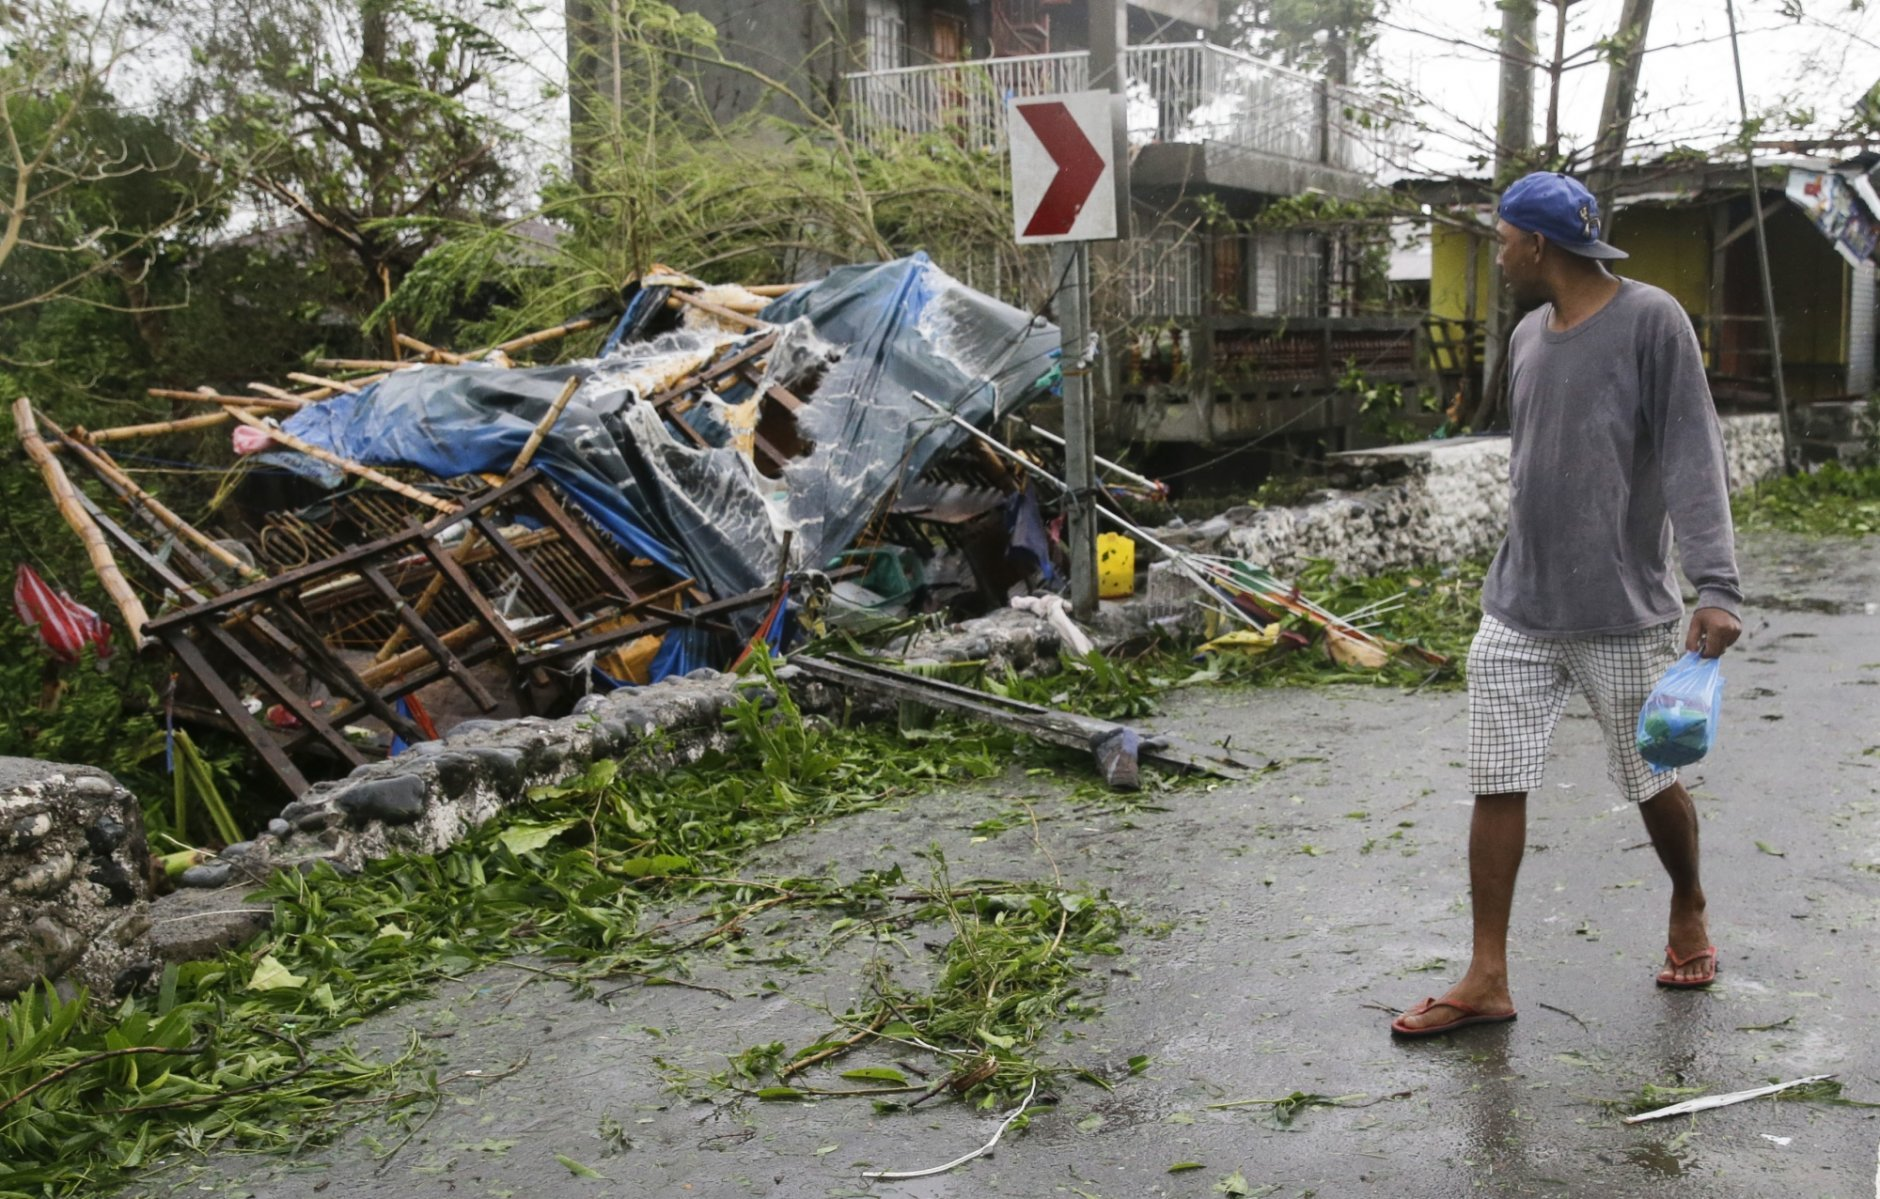 A man looks at a damaged house due to strong winds from Typhoon Mangkhut as it barreled across Tuguegarao city in Cagayan province, northeastern Philippines on Saturday, Sept. 15, 2018. The typhoon slammed into the Philippines northeastern coast early Saturday, it's ferocious winds and blinding rain ripping off tin roof sheets and knocking out power, and plowed through the agricultural region at the start of the onslaught. (AP Photo/Aaron Favila)